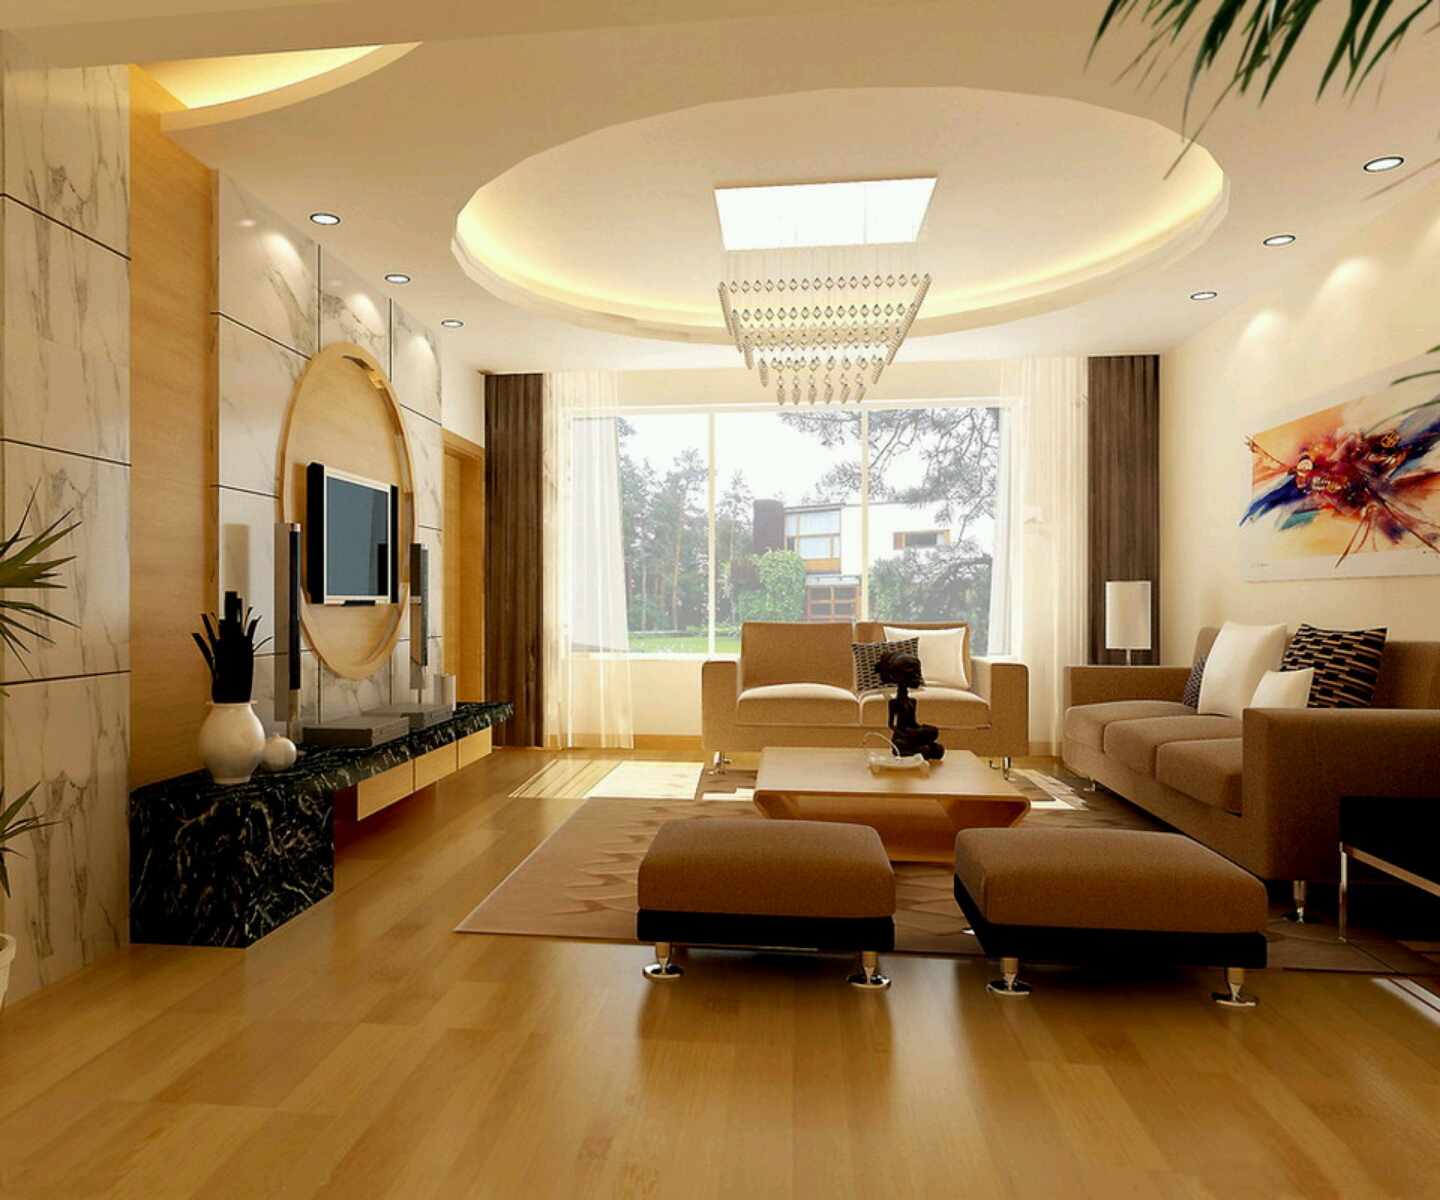 New home designs latest modern interior decoration for Latest home interior designs images